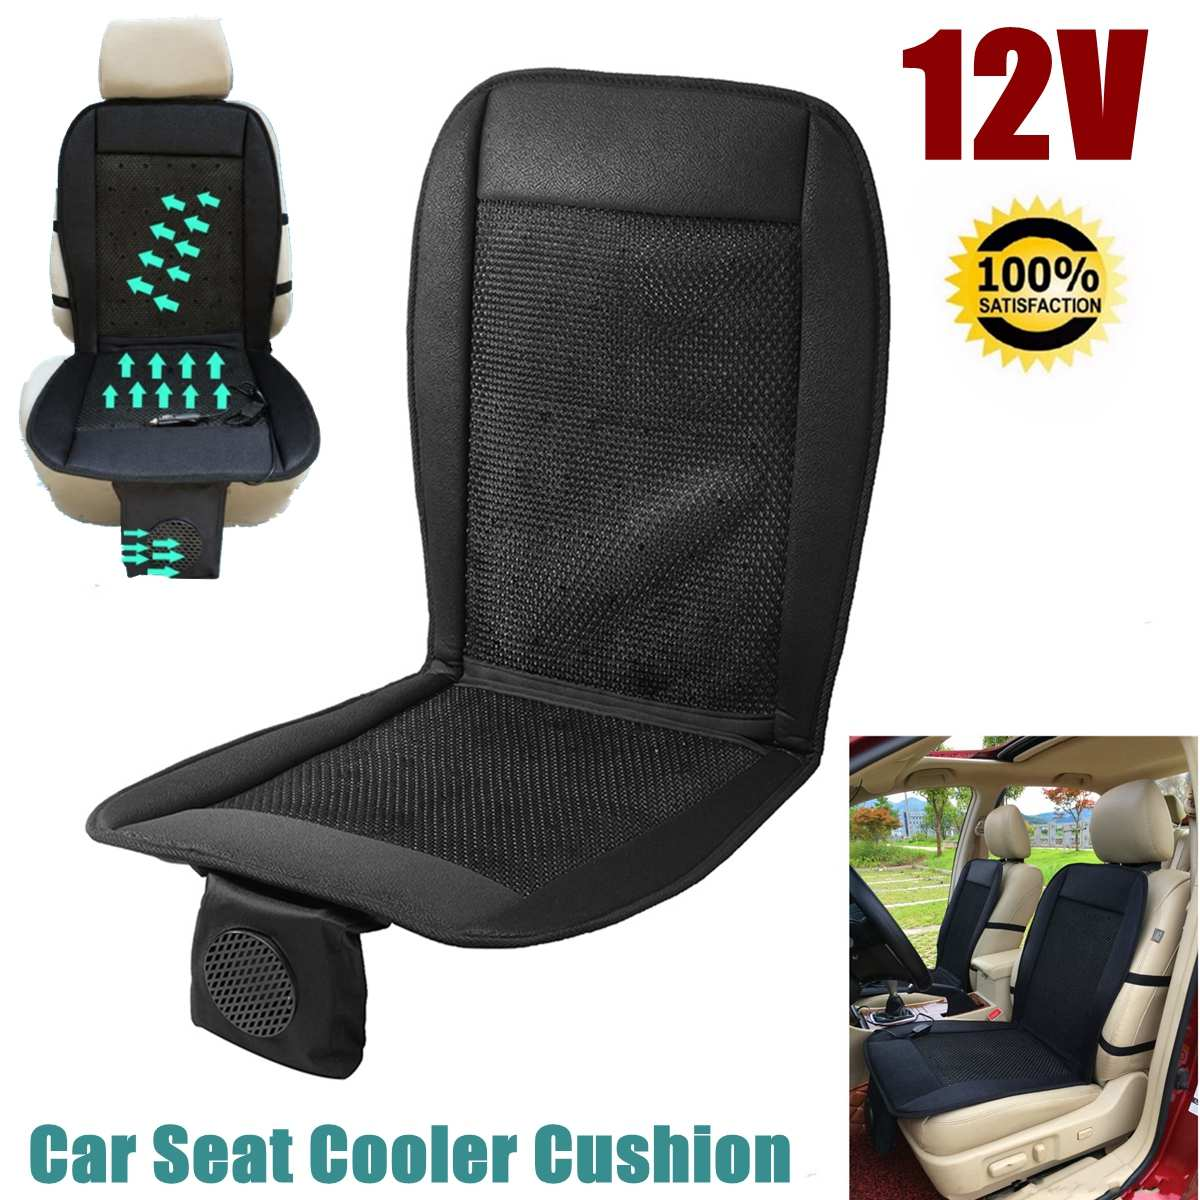 12V New Summer Cool Ventilation Cushion Car Cushion Cooling Seat Air Fan Massage Seat Air Conditioning Cushion 2 Speeds Low/high